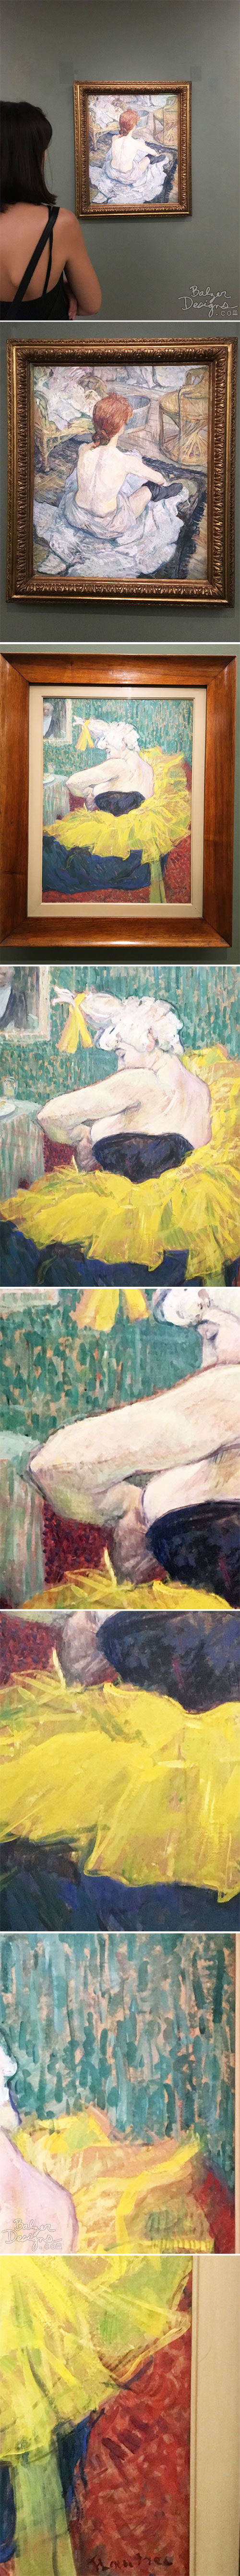 From the Balzer Designs Blog: Musee d'Orsay: Part Two